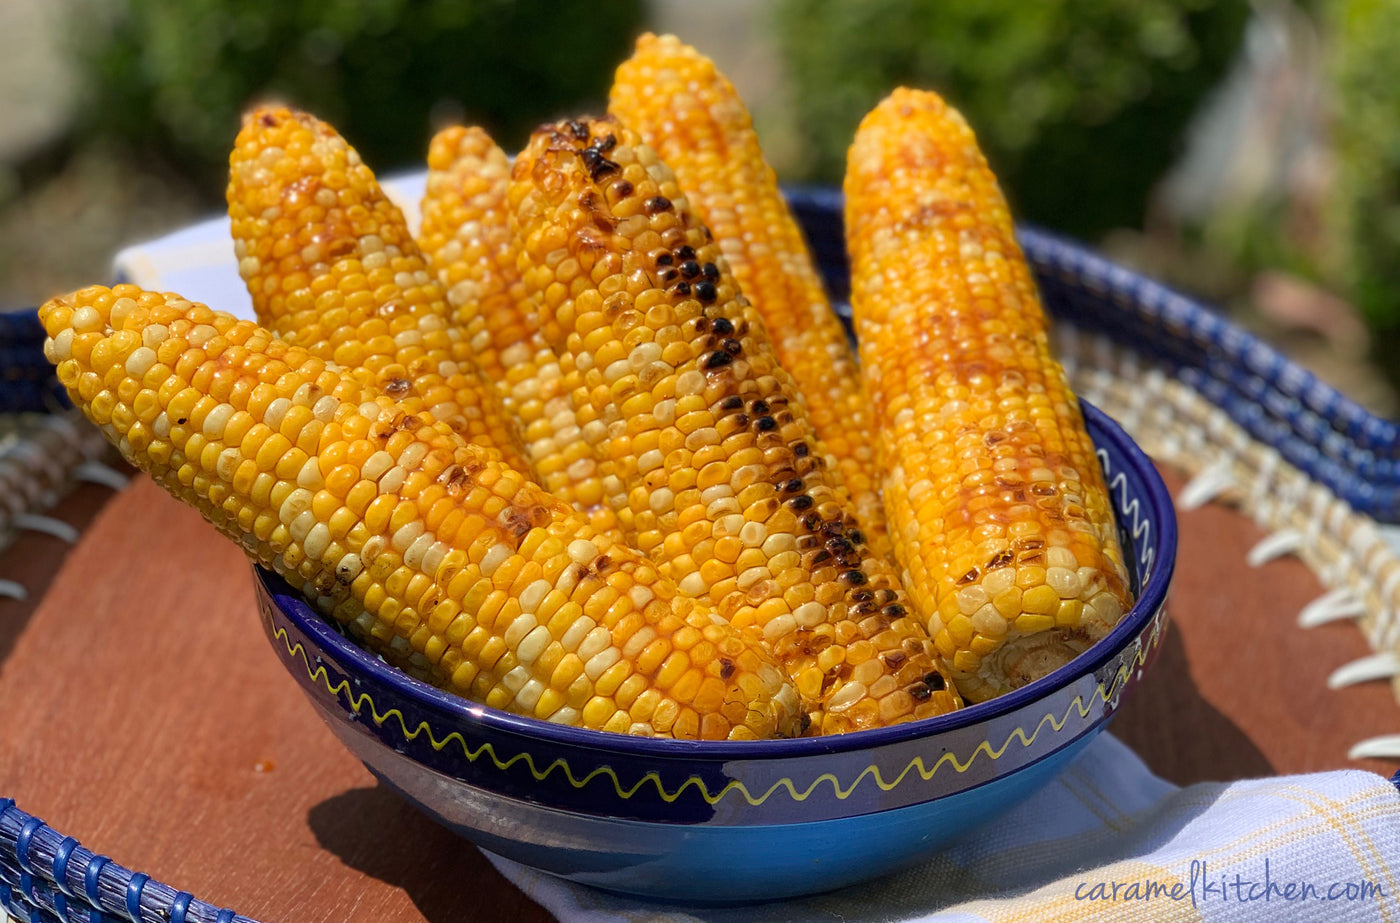 Grilled Corn with Chipotle & Bourbon Caramel Sauce